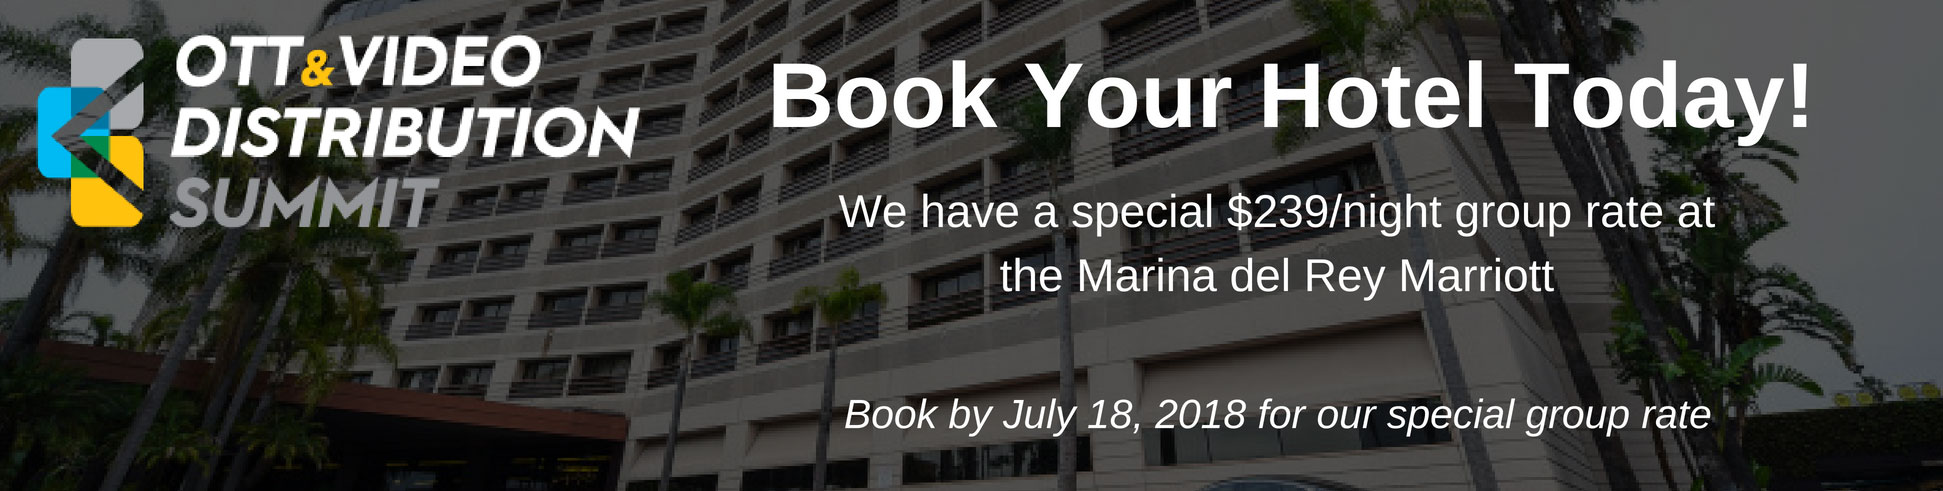 Book Your Hotel Today